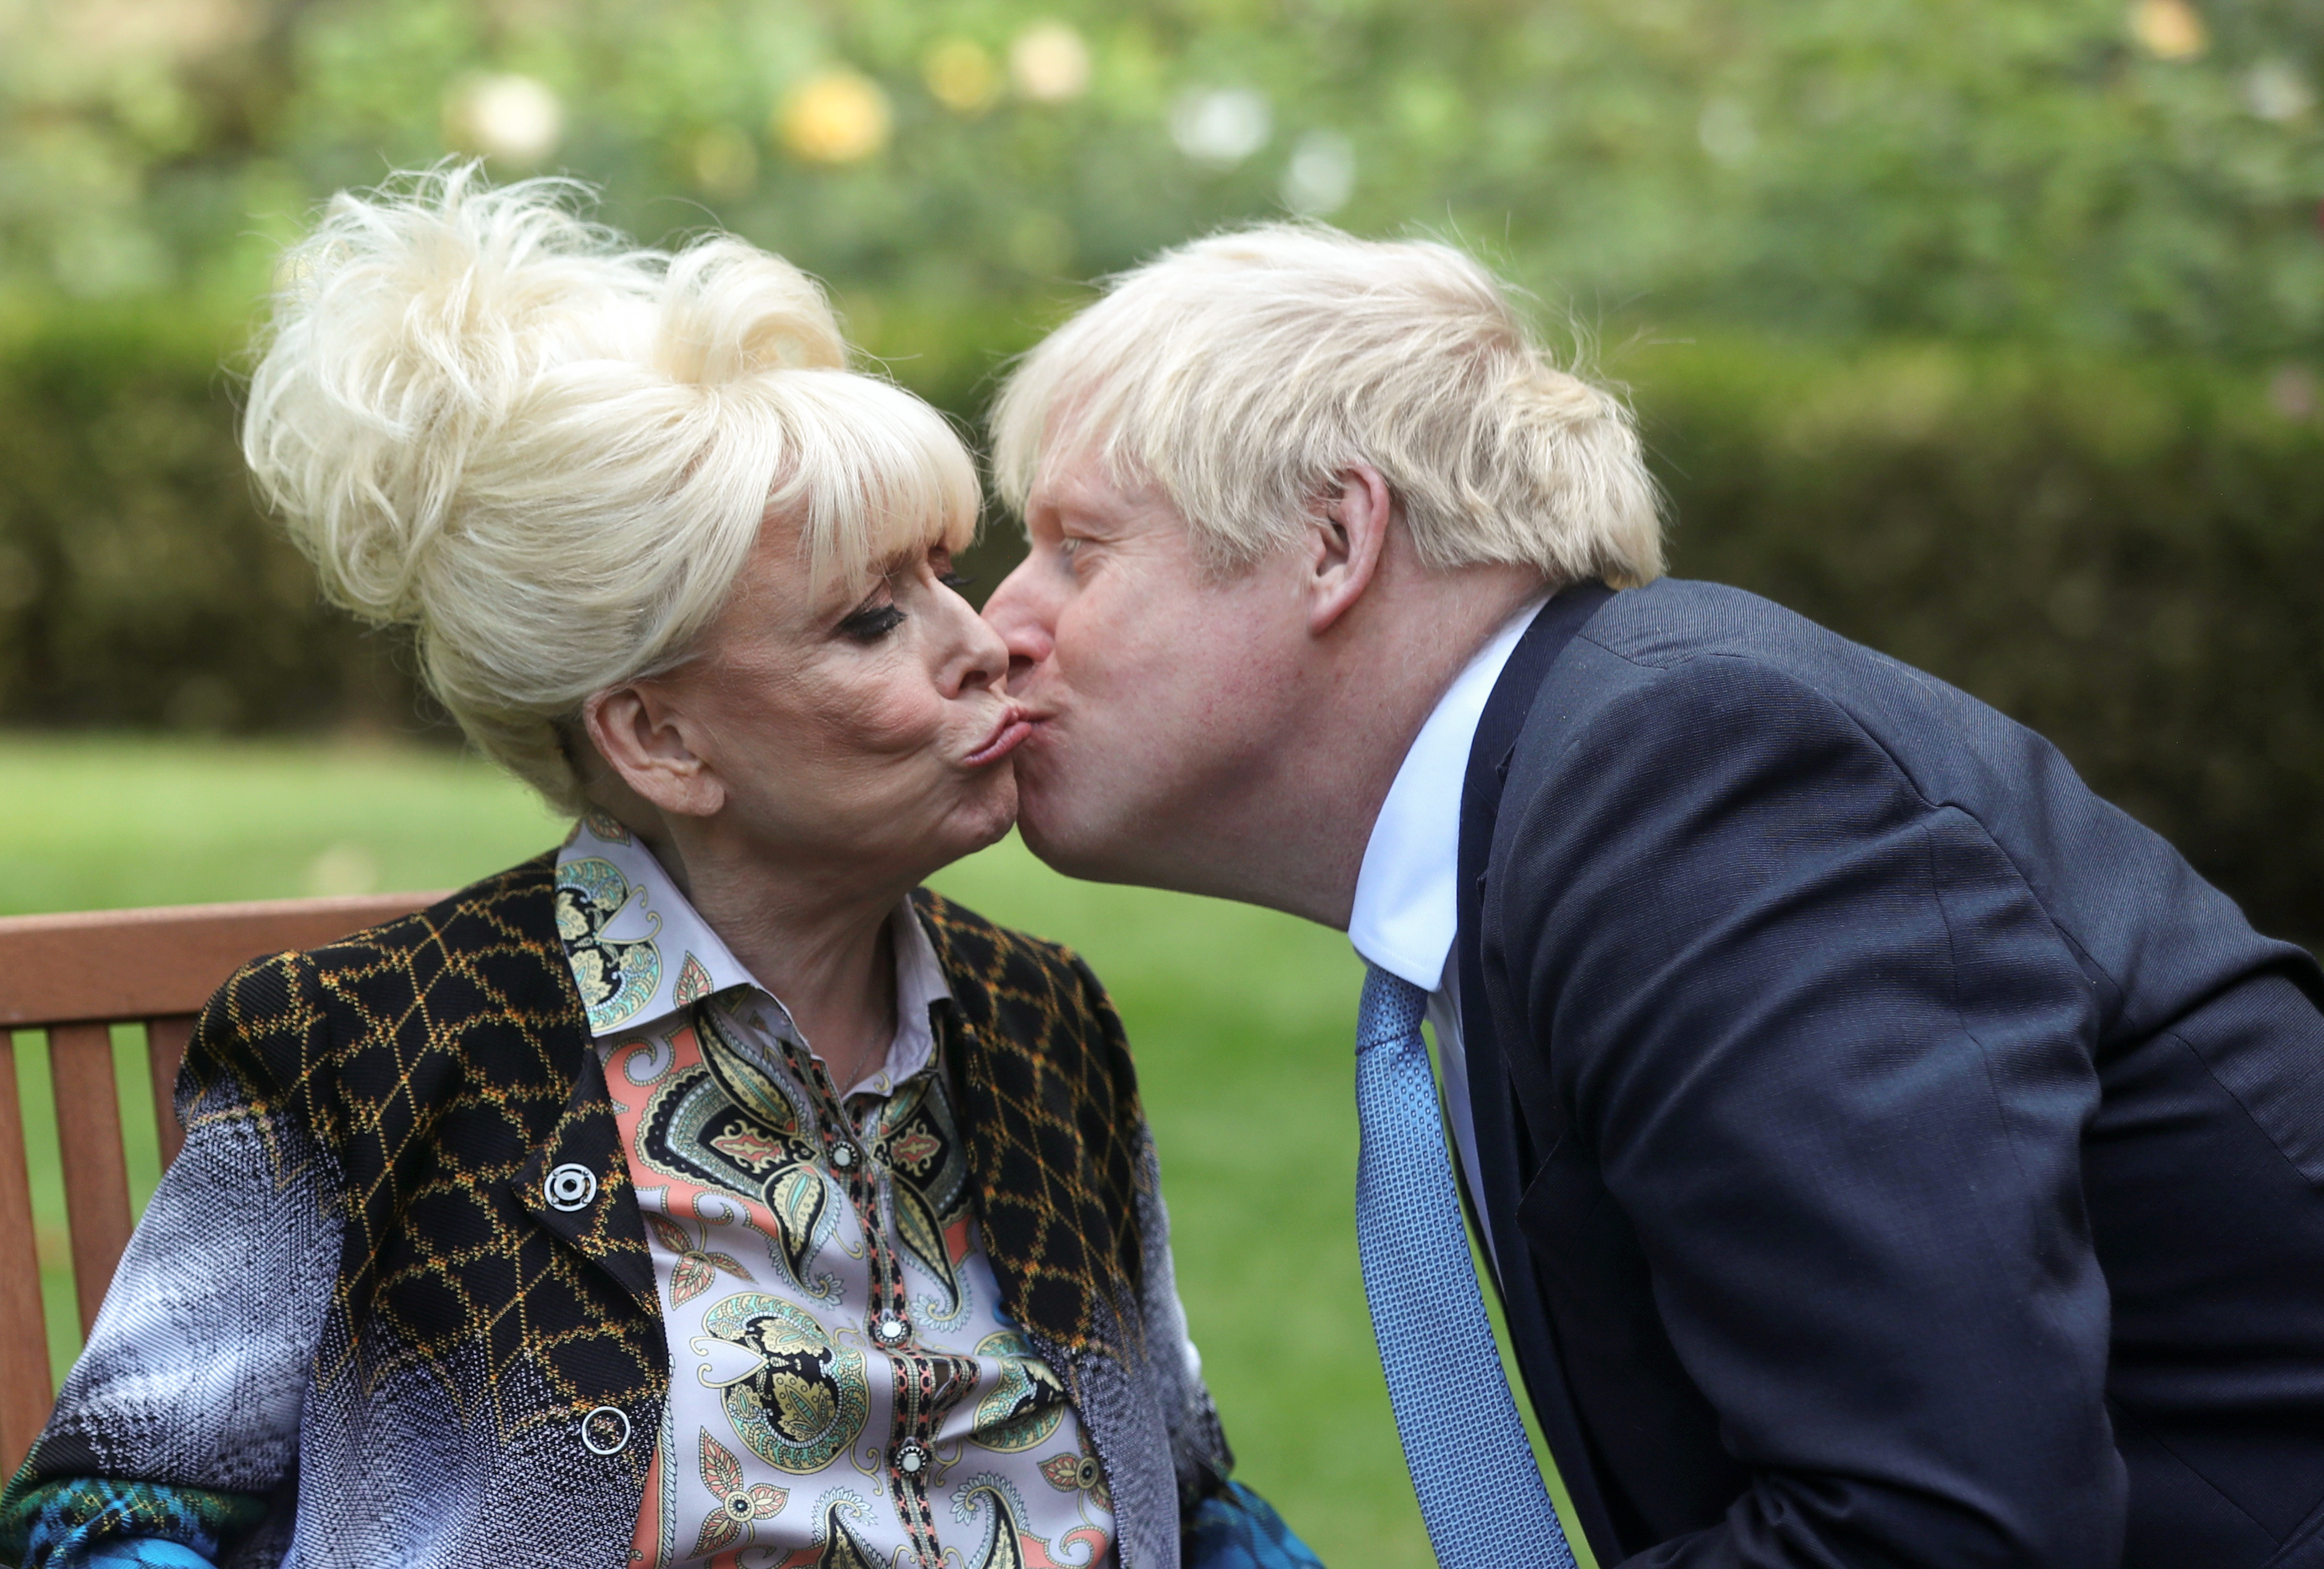 """PA REVIEW OF THE YEAR 2019 File photo dated 02/09/19 of Dame Barbara Windsor meeting Prime Minister Boris Johnson after she delivered an Alzheimer's Society open letter to 10 Downing Street in Westminster, London, calling on him to address the """"devastating state"""" of dementia care."""